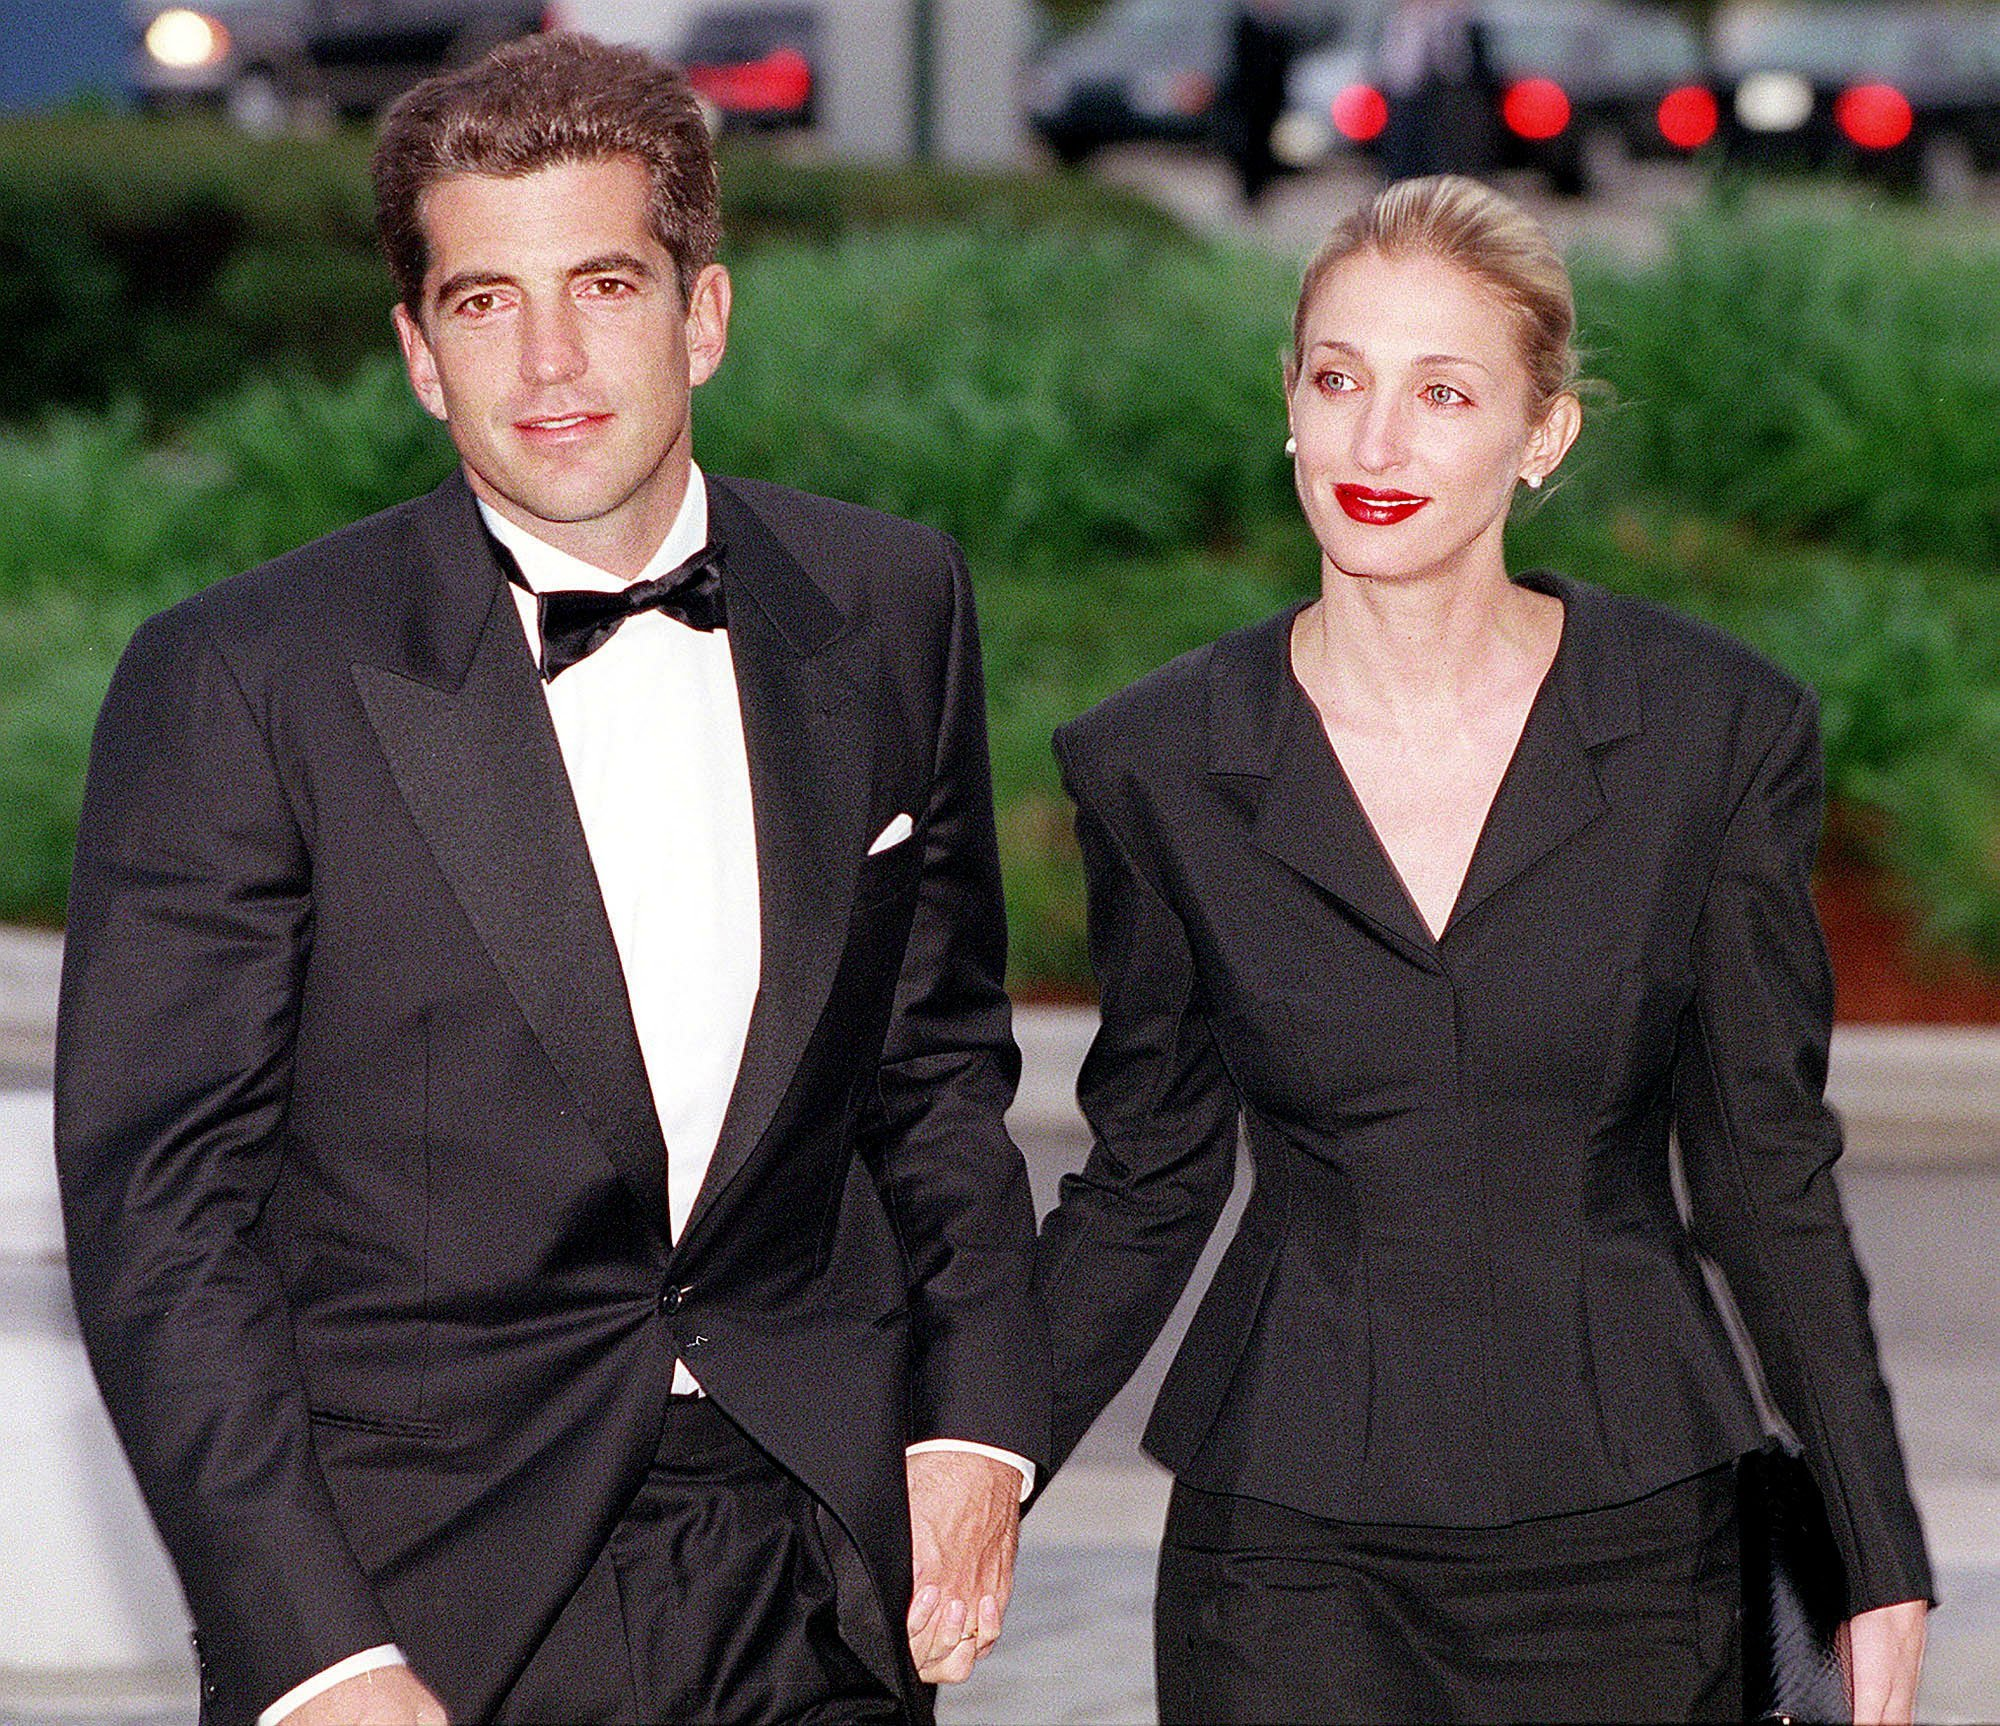 ohn F. Kennedy, Jr. and his wife Carolyn Bessette Kennedy arrive at the annual John F. Kennedy Library Foundation dinner on May 23, 1999, at the Kennedy Library in Boston, MA. | Source: Getty Images.